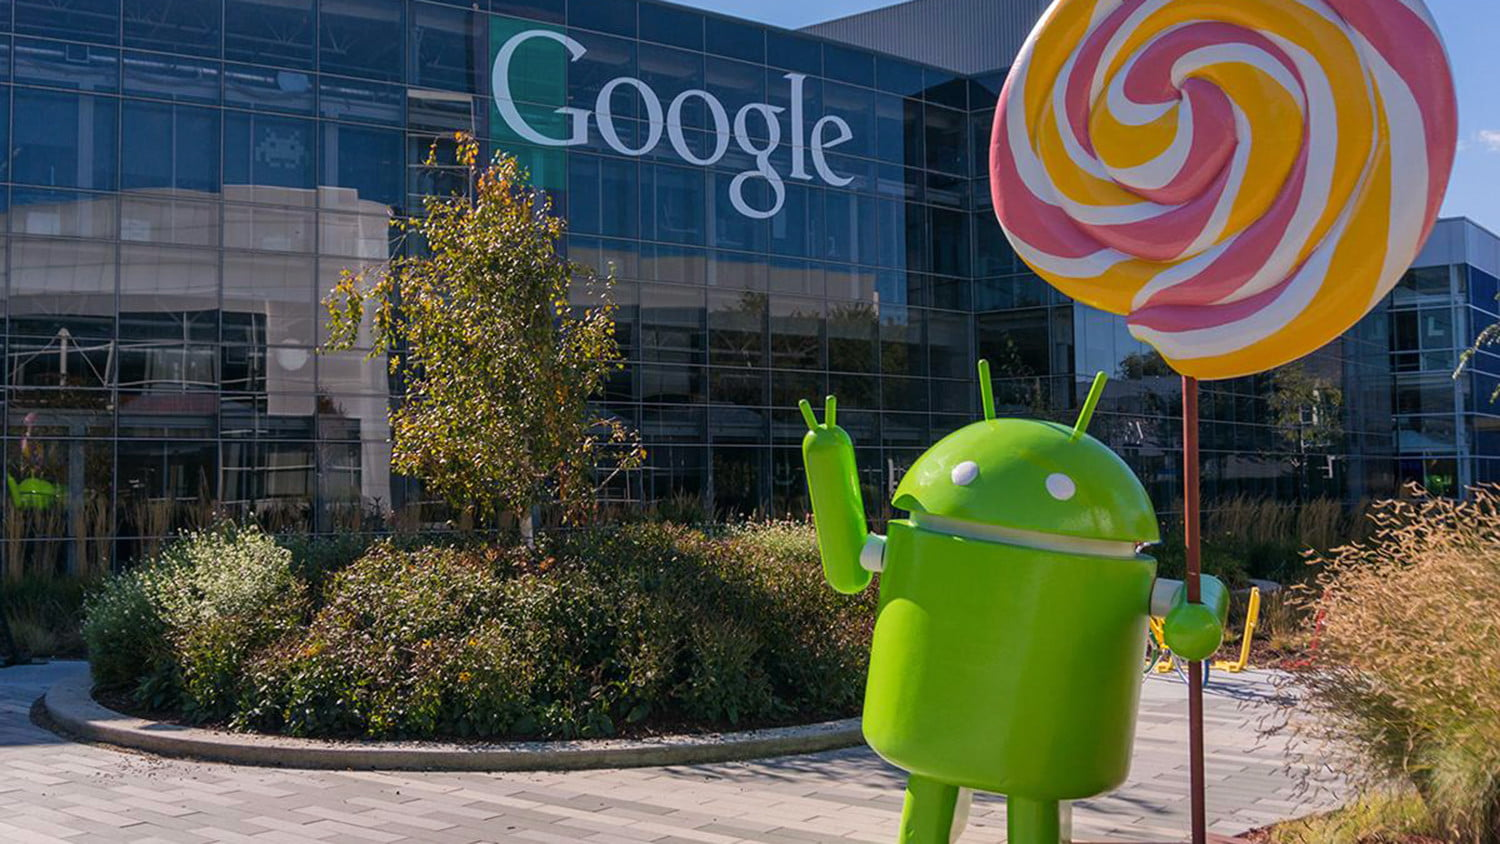 Who's Bugdroid? Meet the cute mascot of Android